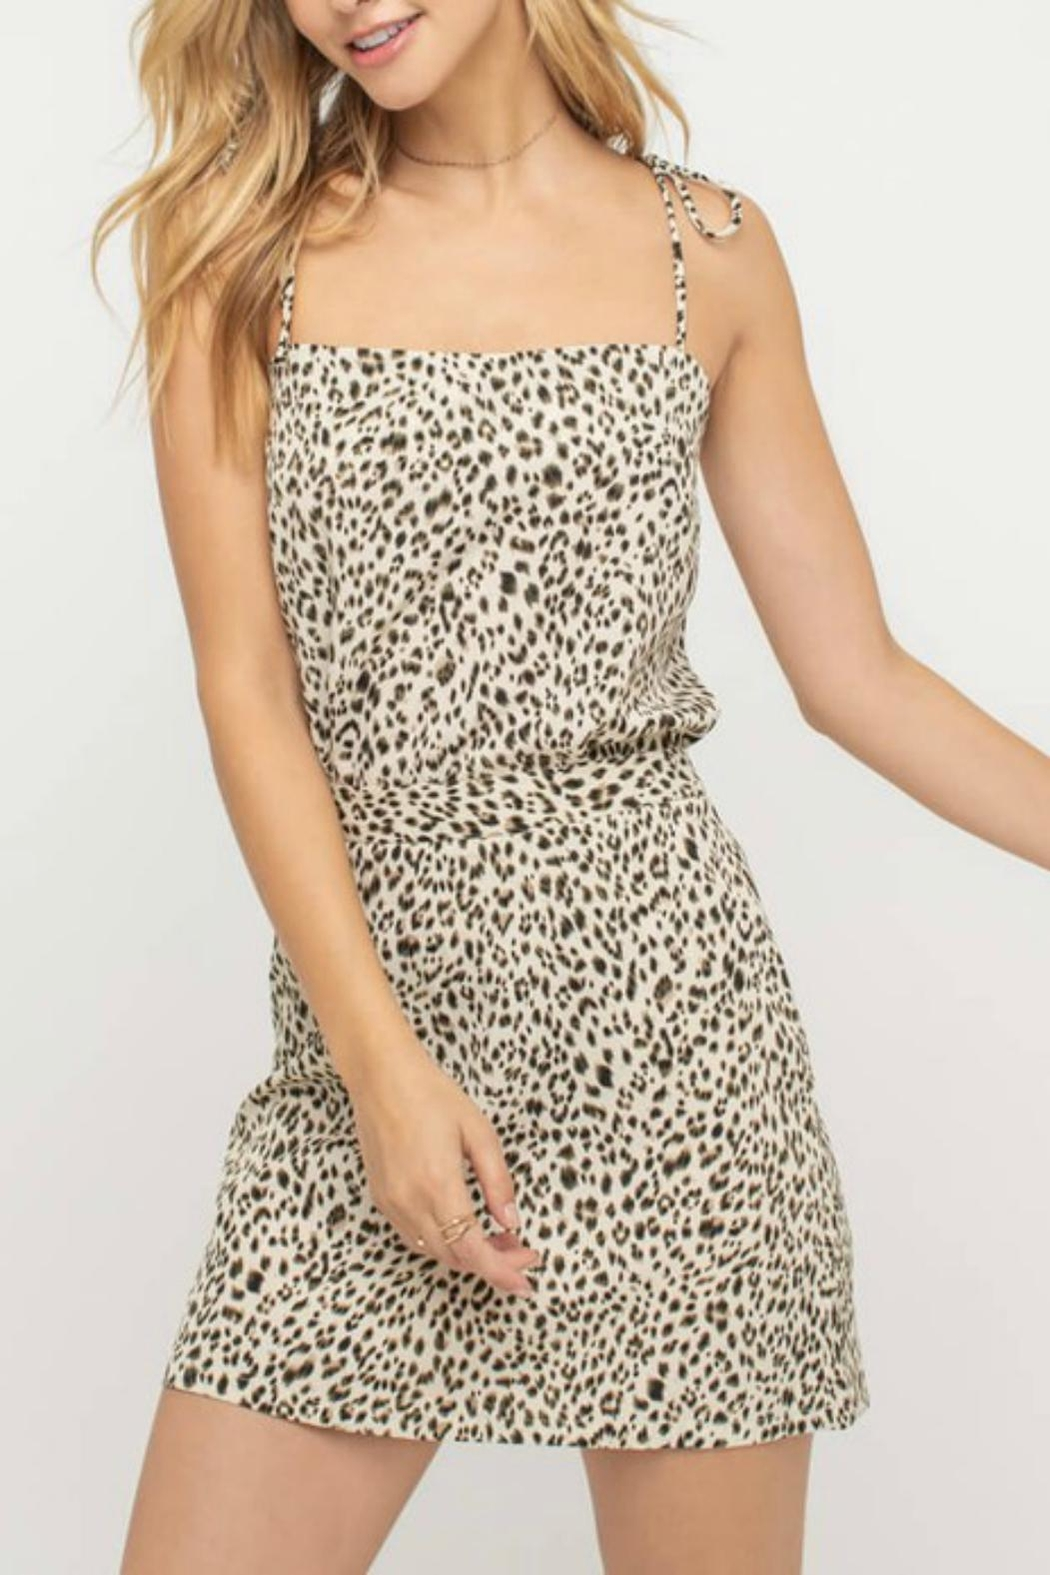 Pretty Little Things Leopard Print Cami - Side Cropped Image